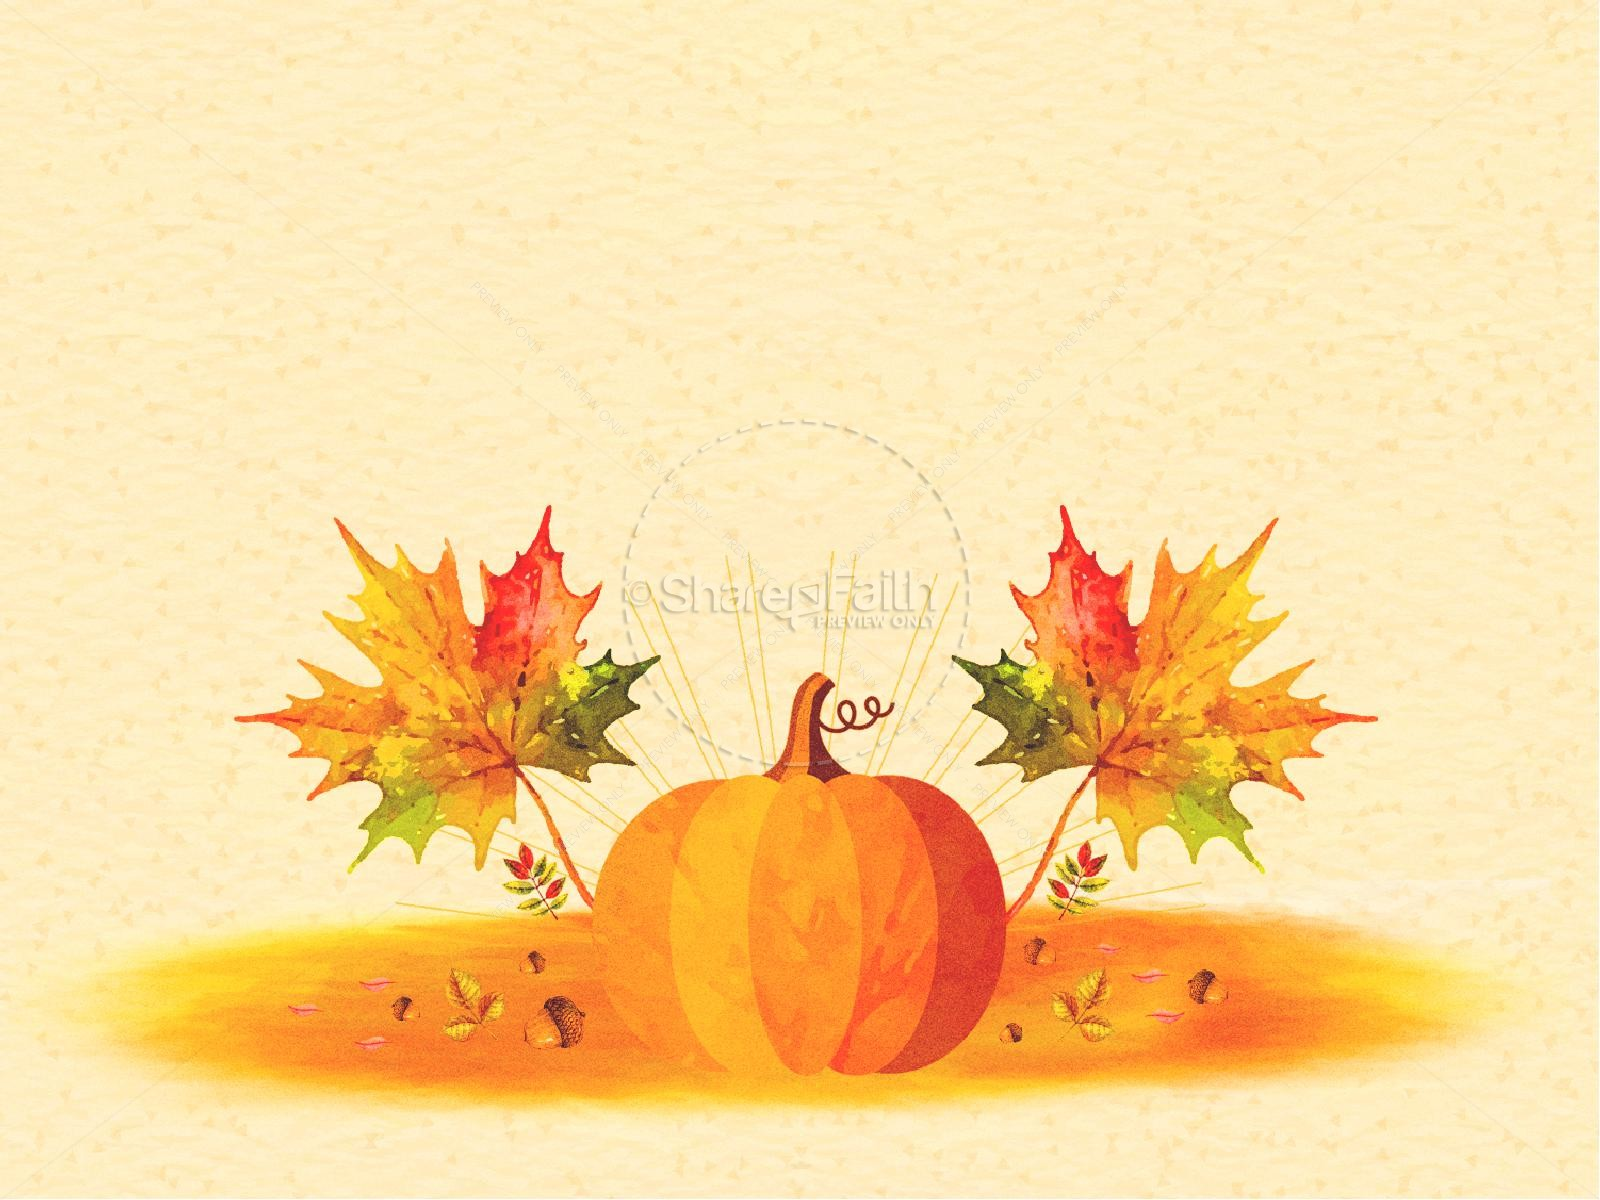 Harvest Party Pumpkin Graphic